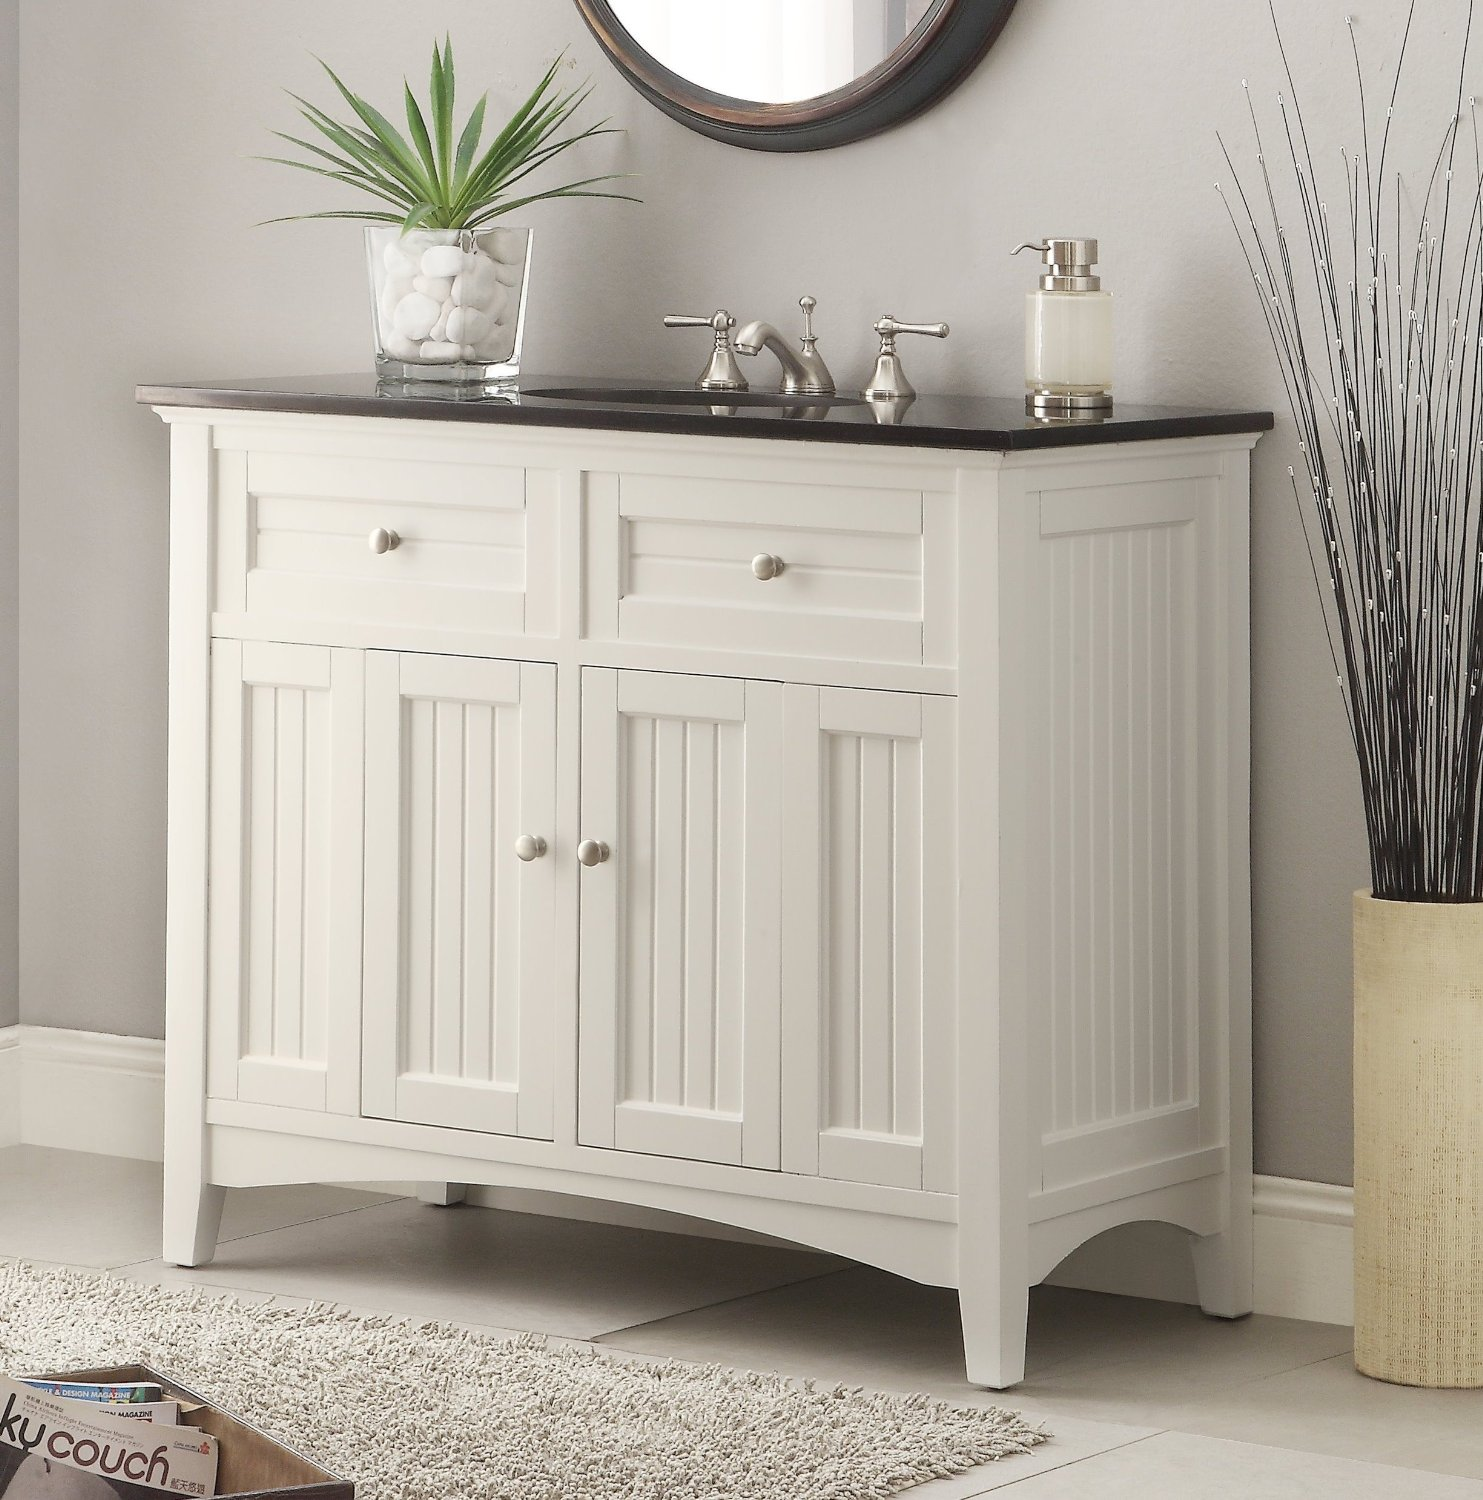 42 inch adelina antique white sink bathroom vanity